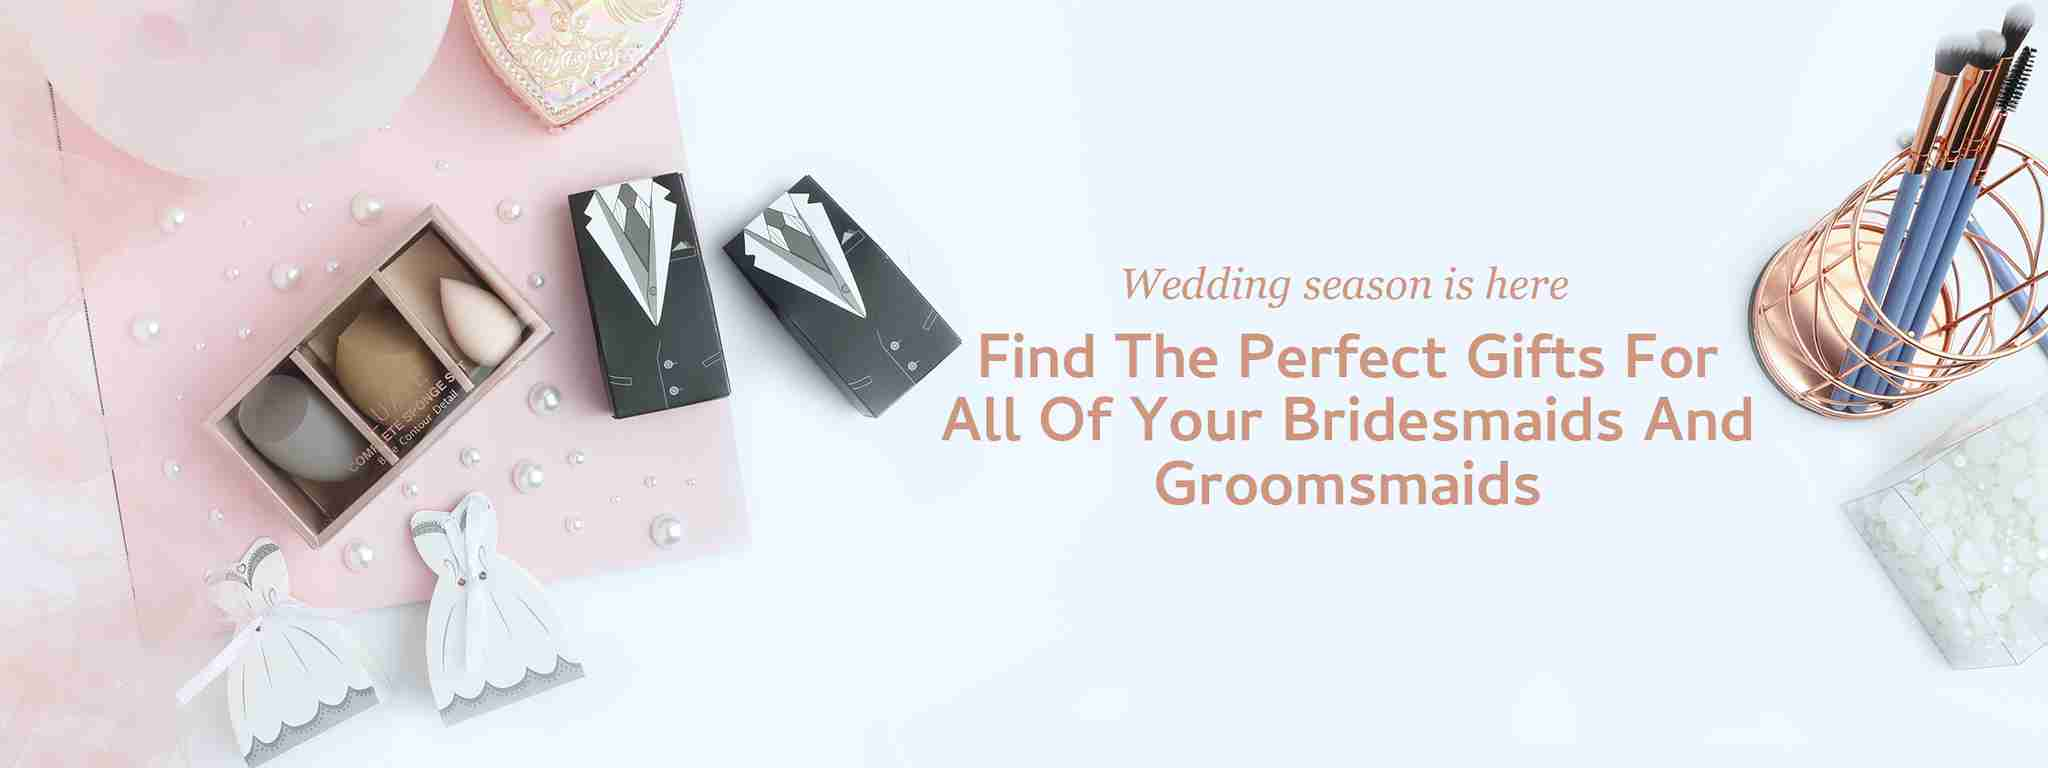 Wedding season is here, find the perfect gift for all of your bridesmaids and groomsmaids.